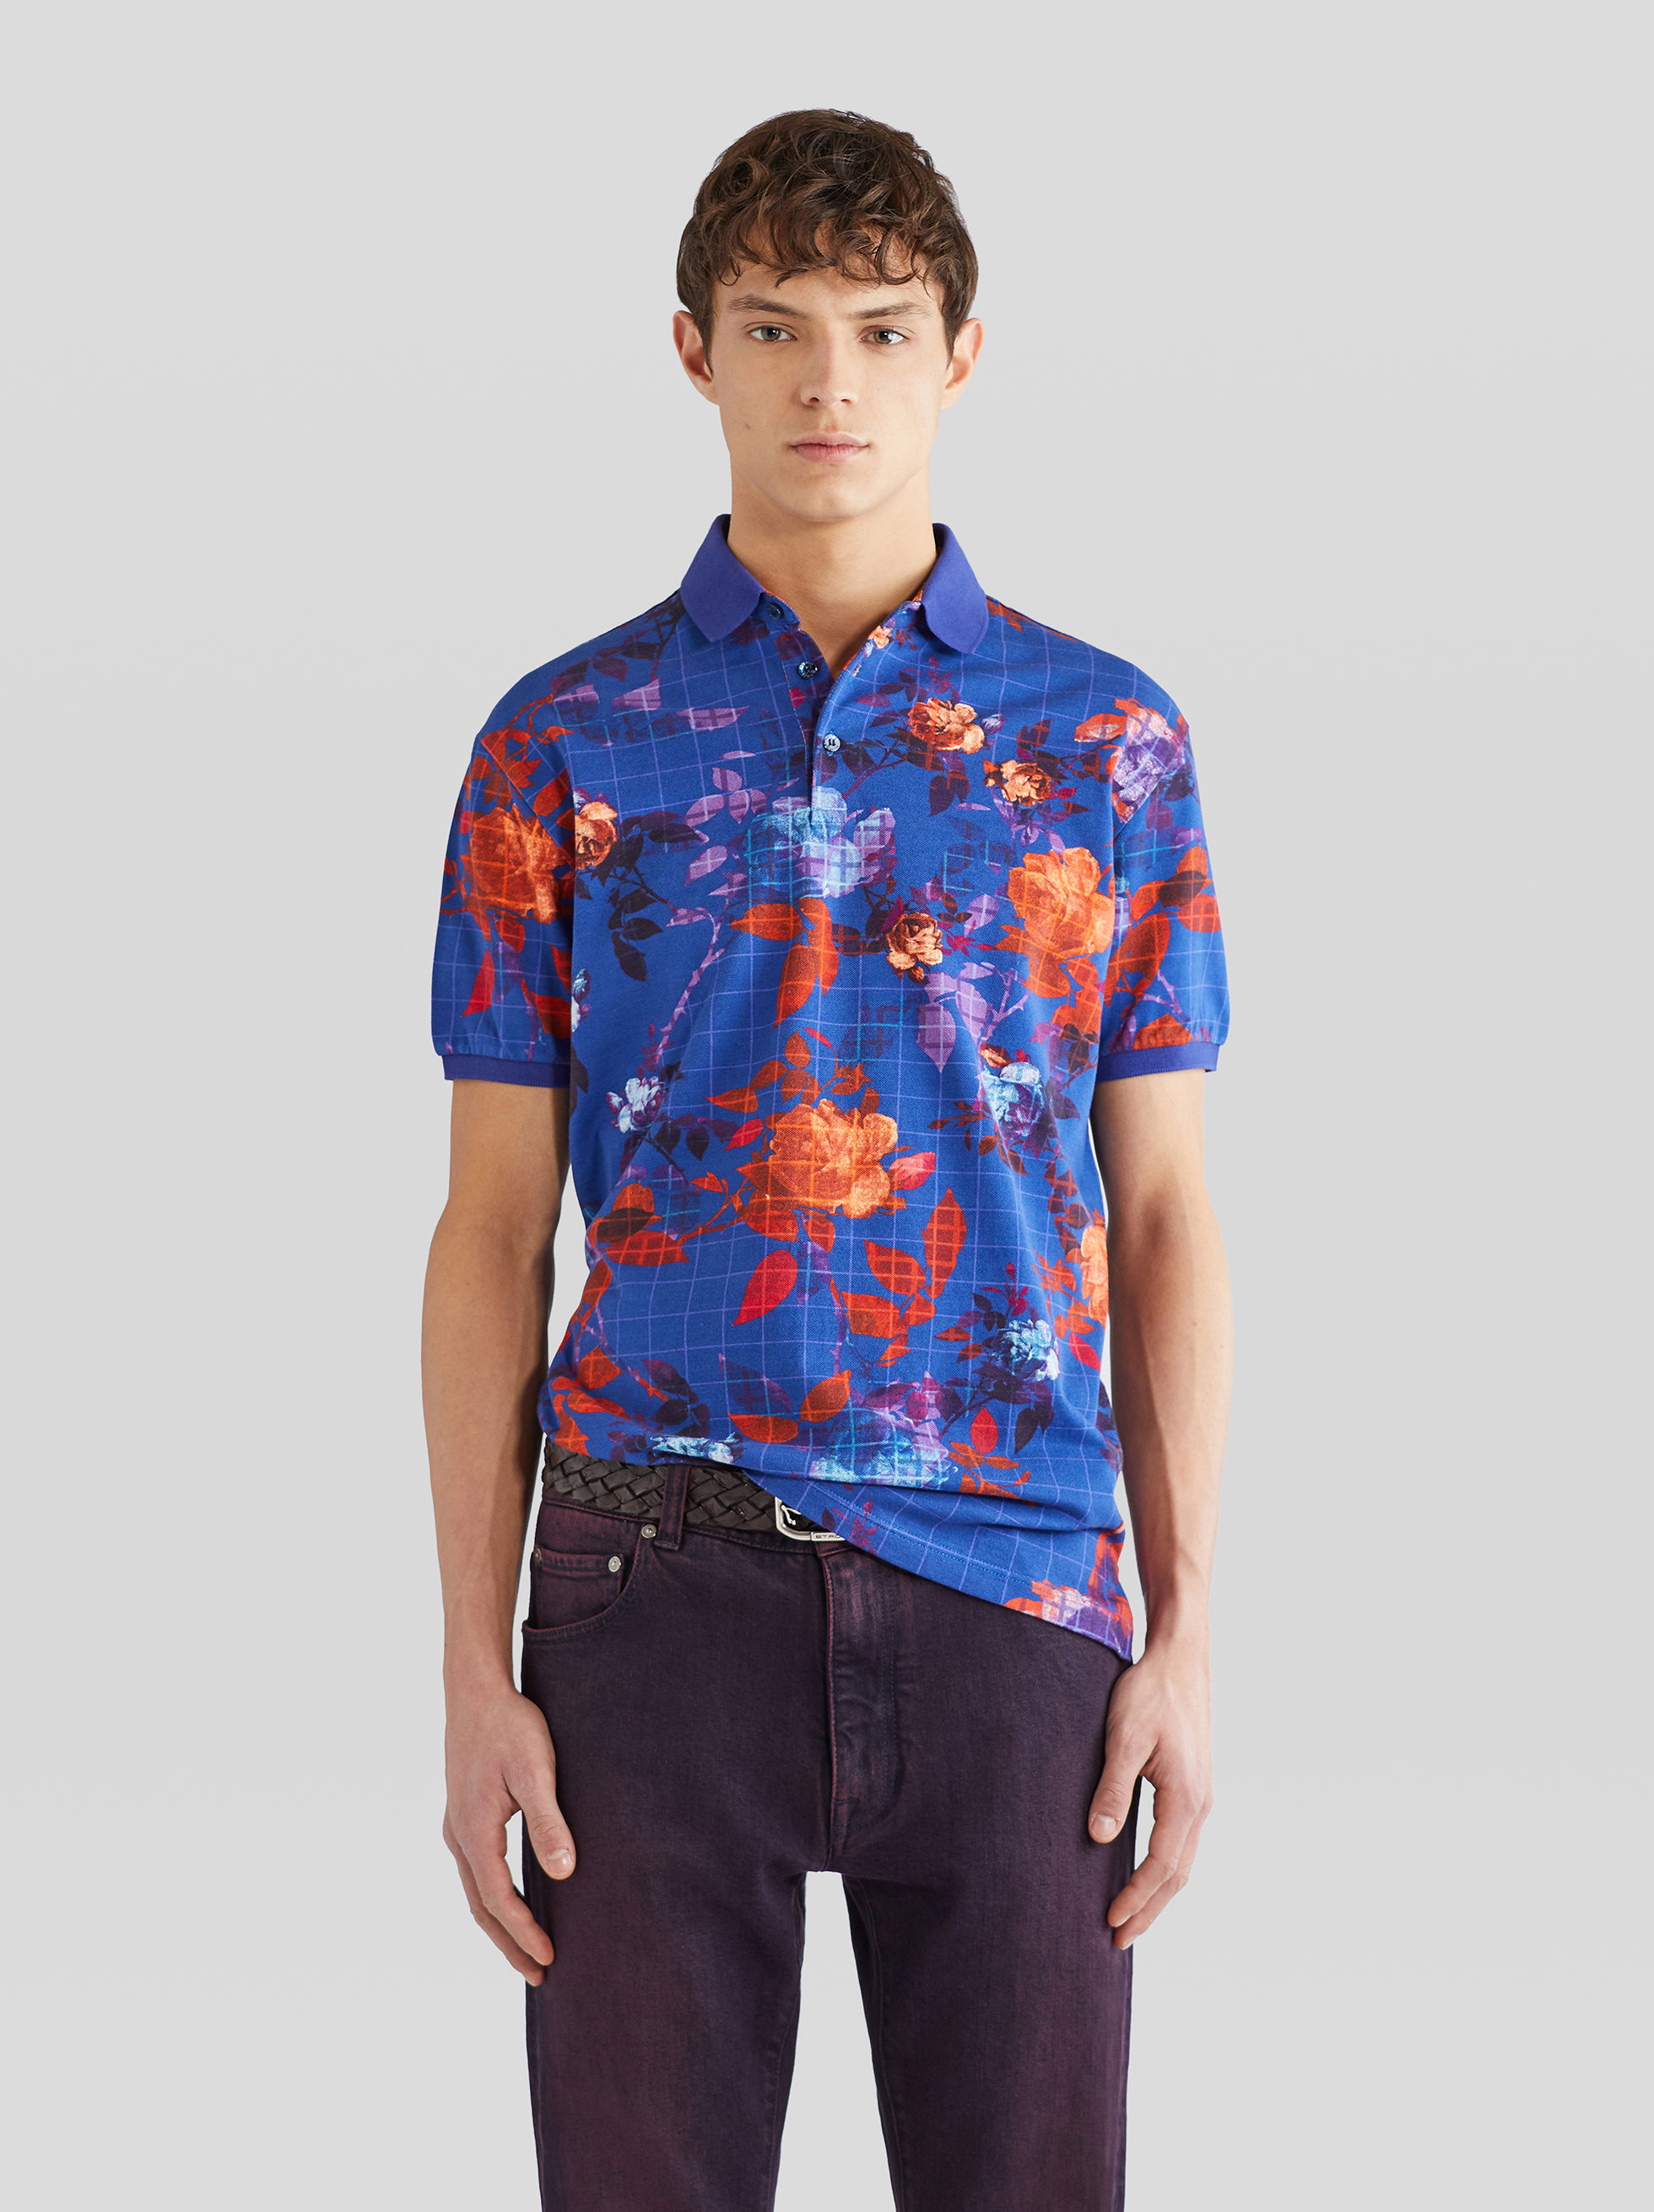 PIQUET POLO SHIRT WITH CHECK FLORAL PATTERNS